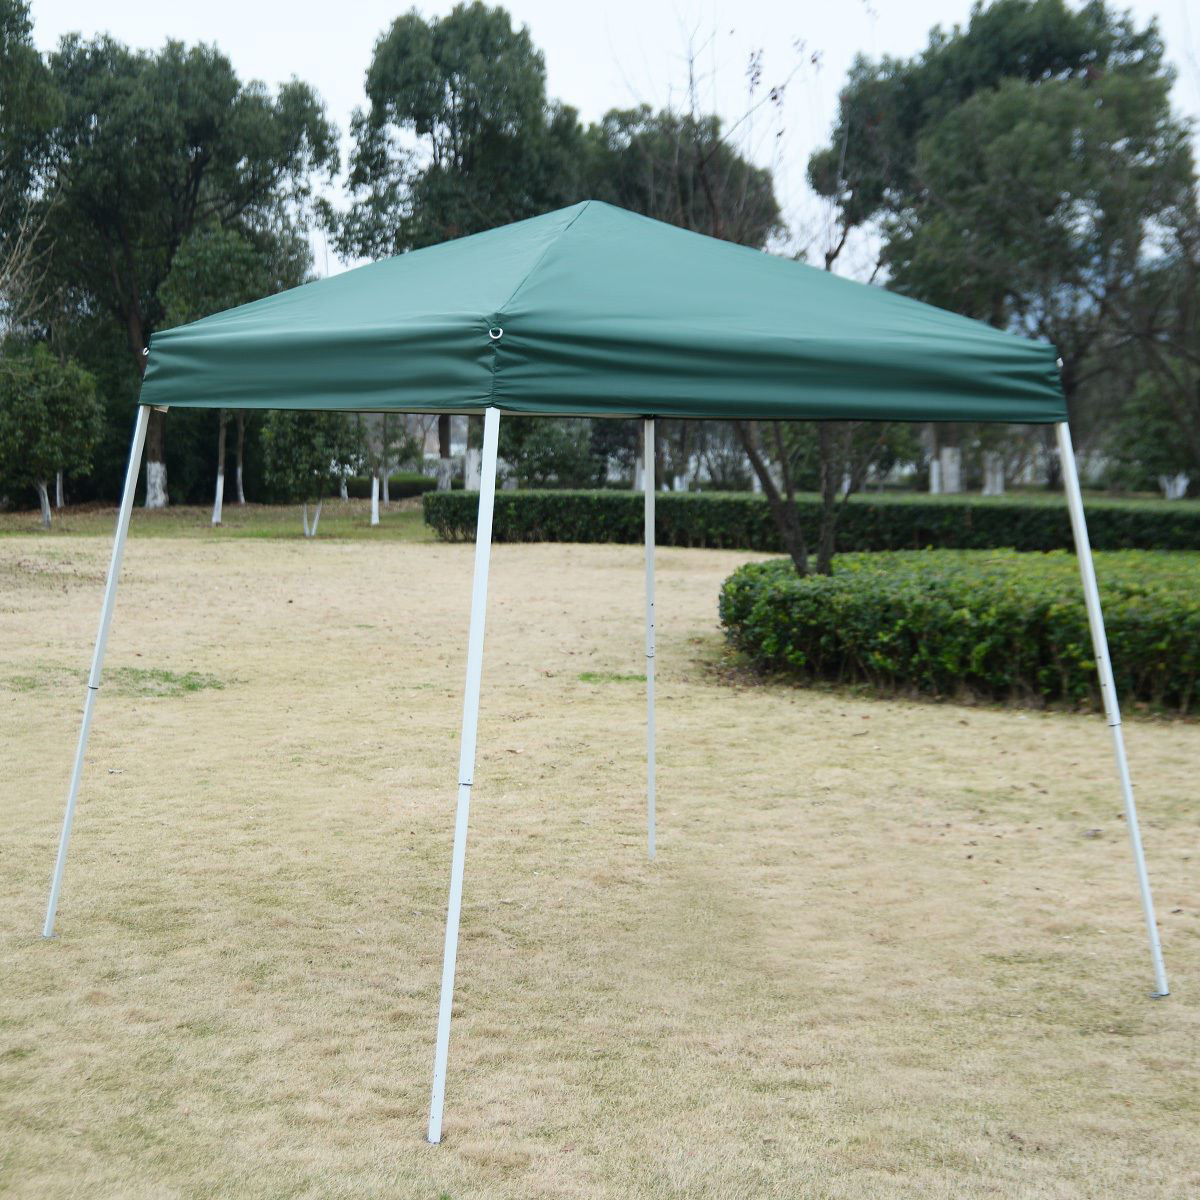 Picture of Outdoor 8'x8' EZ Pop Up Tent Gazebo with Carry Bag - Green